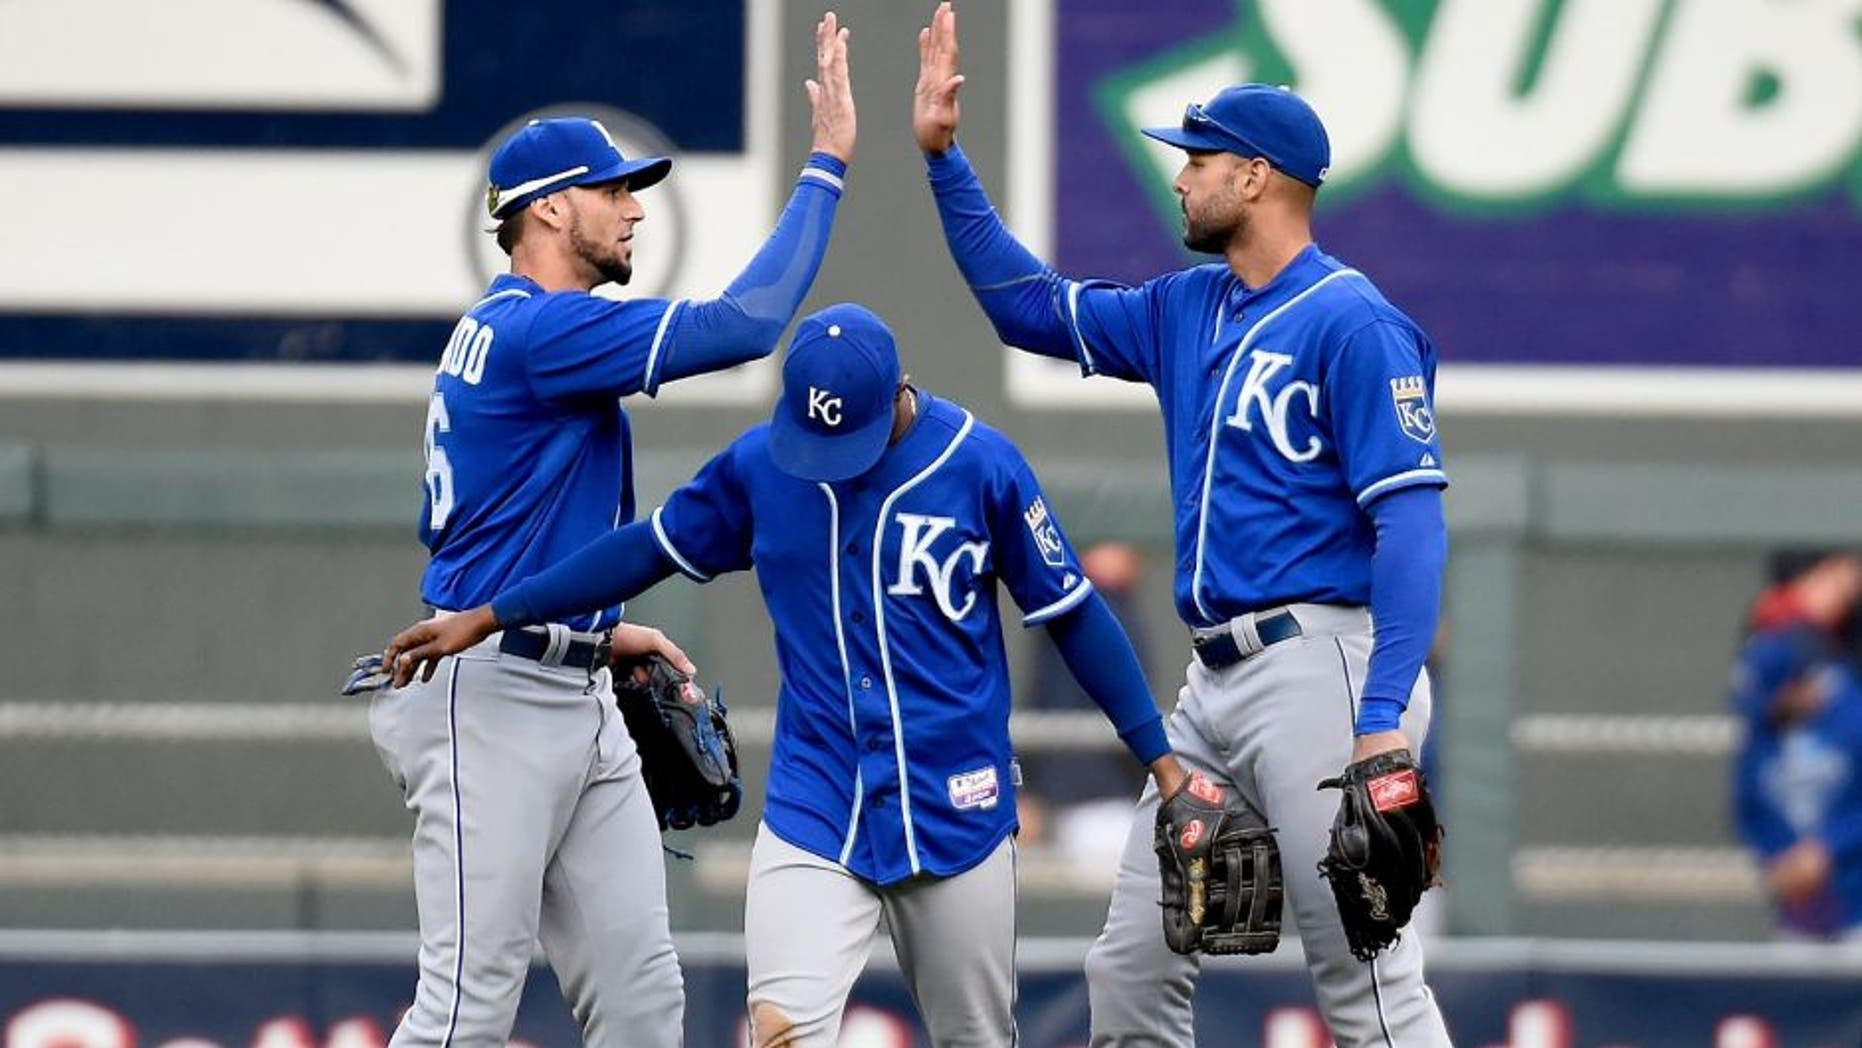 MINNEAPOLIS, MN - OCTOBER 4: (L-R) Paulo Orlando #16, Jarrod Dyson #1 and Alex Rios #15 of the Kansas City Royals celebrate a win of the game against the Minnesota Twins on October 4, 2015 at Target Field in Minneapolis, Minnesota. The Royals defeated the Twins 6-1. (Photo by Hannah Foslien/Getty Images)